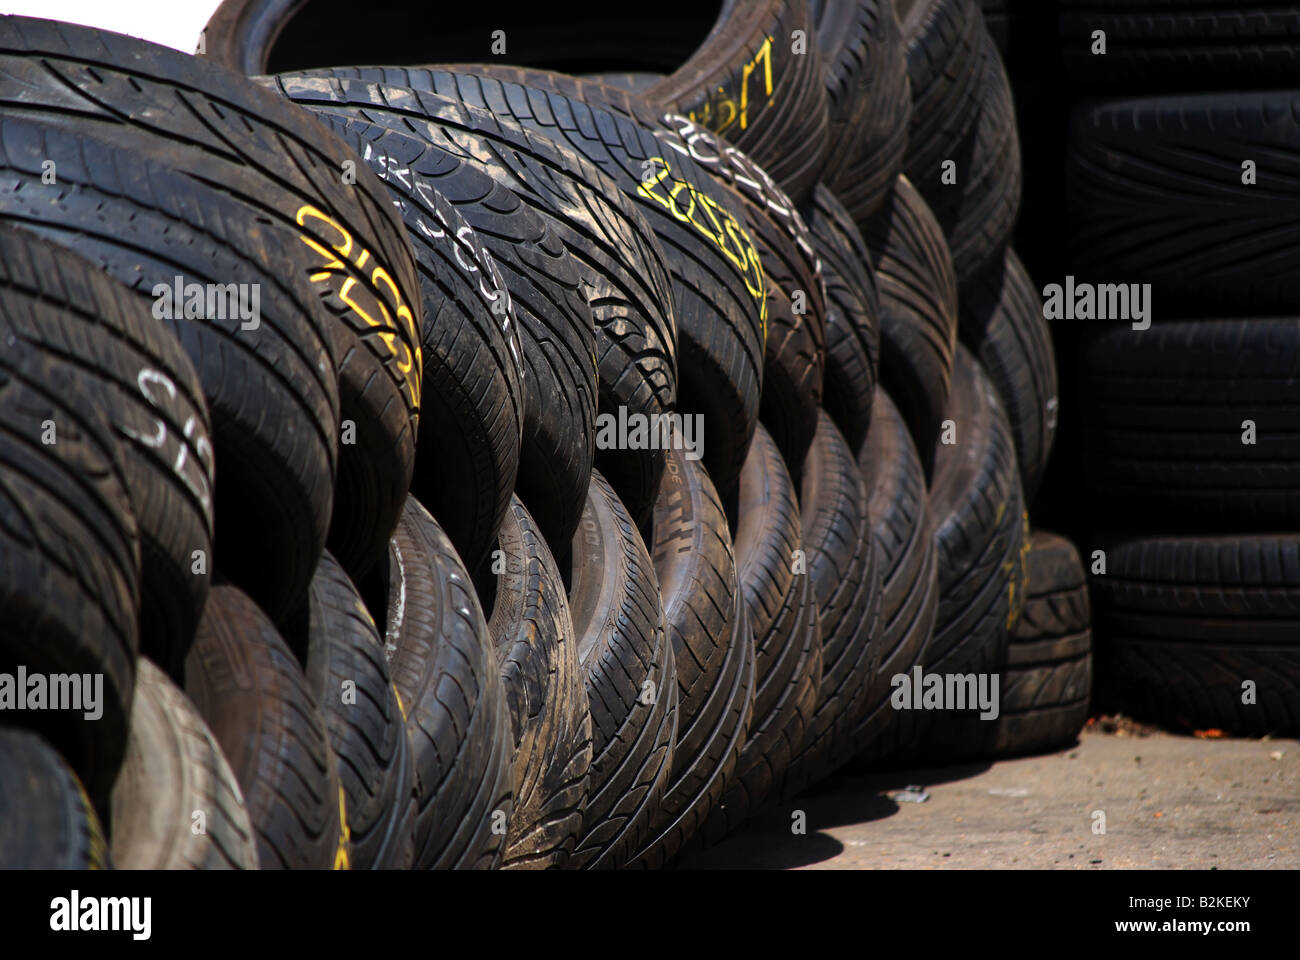 Tyres stacked for recycling - Stock Image